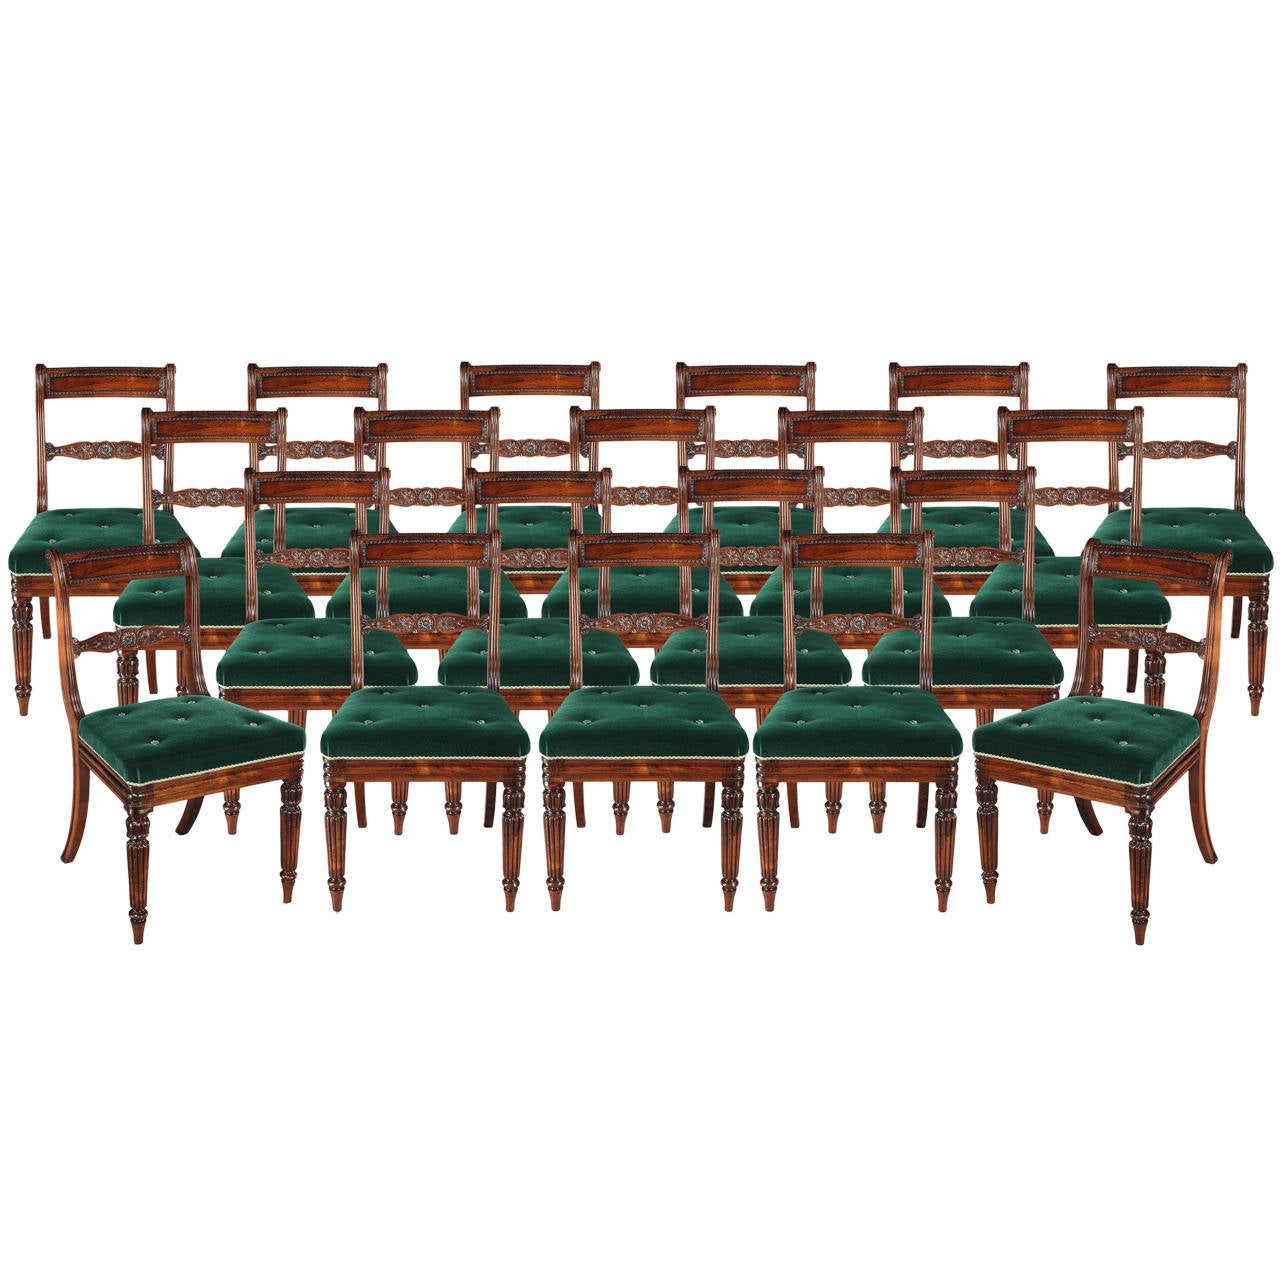 Set Of 20 Regency Period Dining Chairs With Green Velvet Upholstery 1